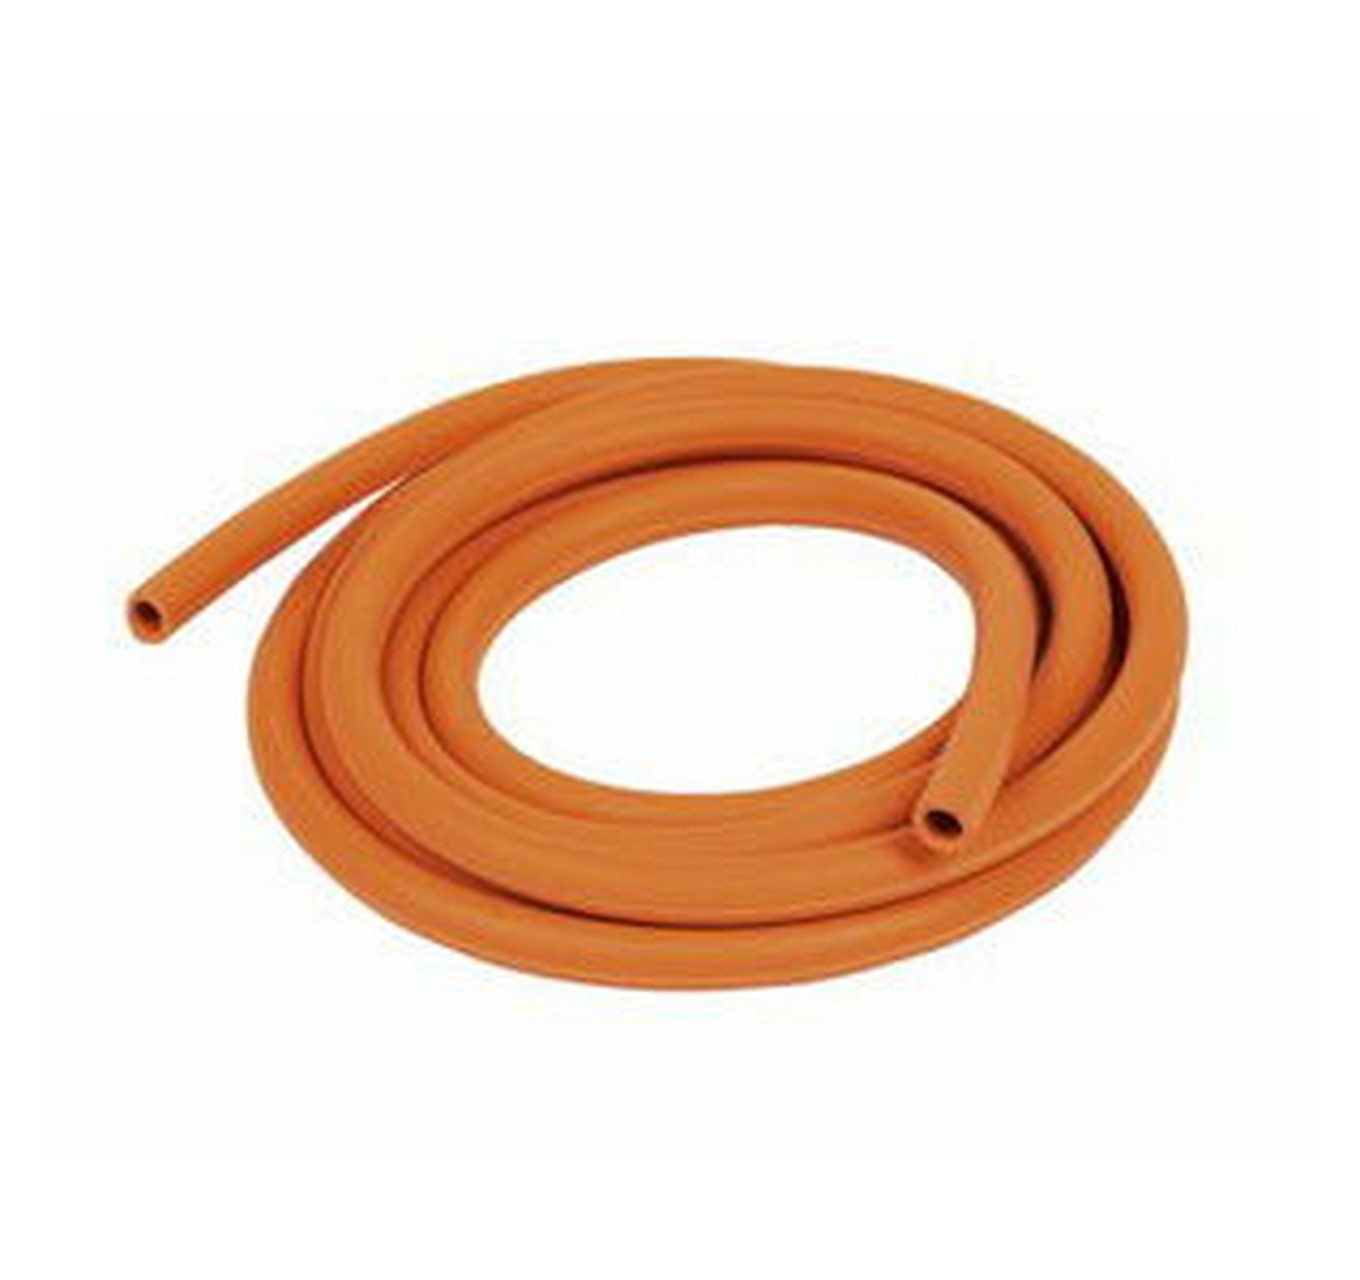 Orange Gas Pipe 8mm - Per 1m